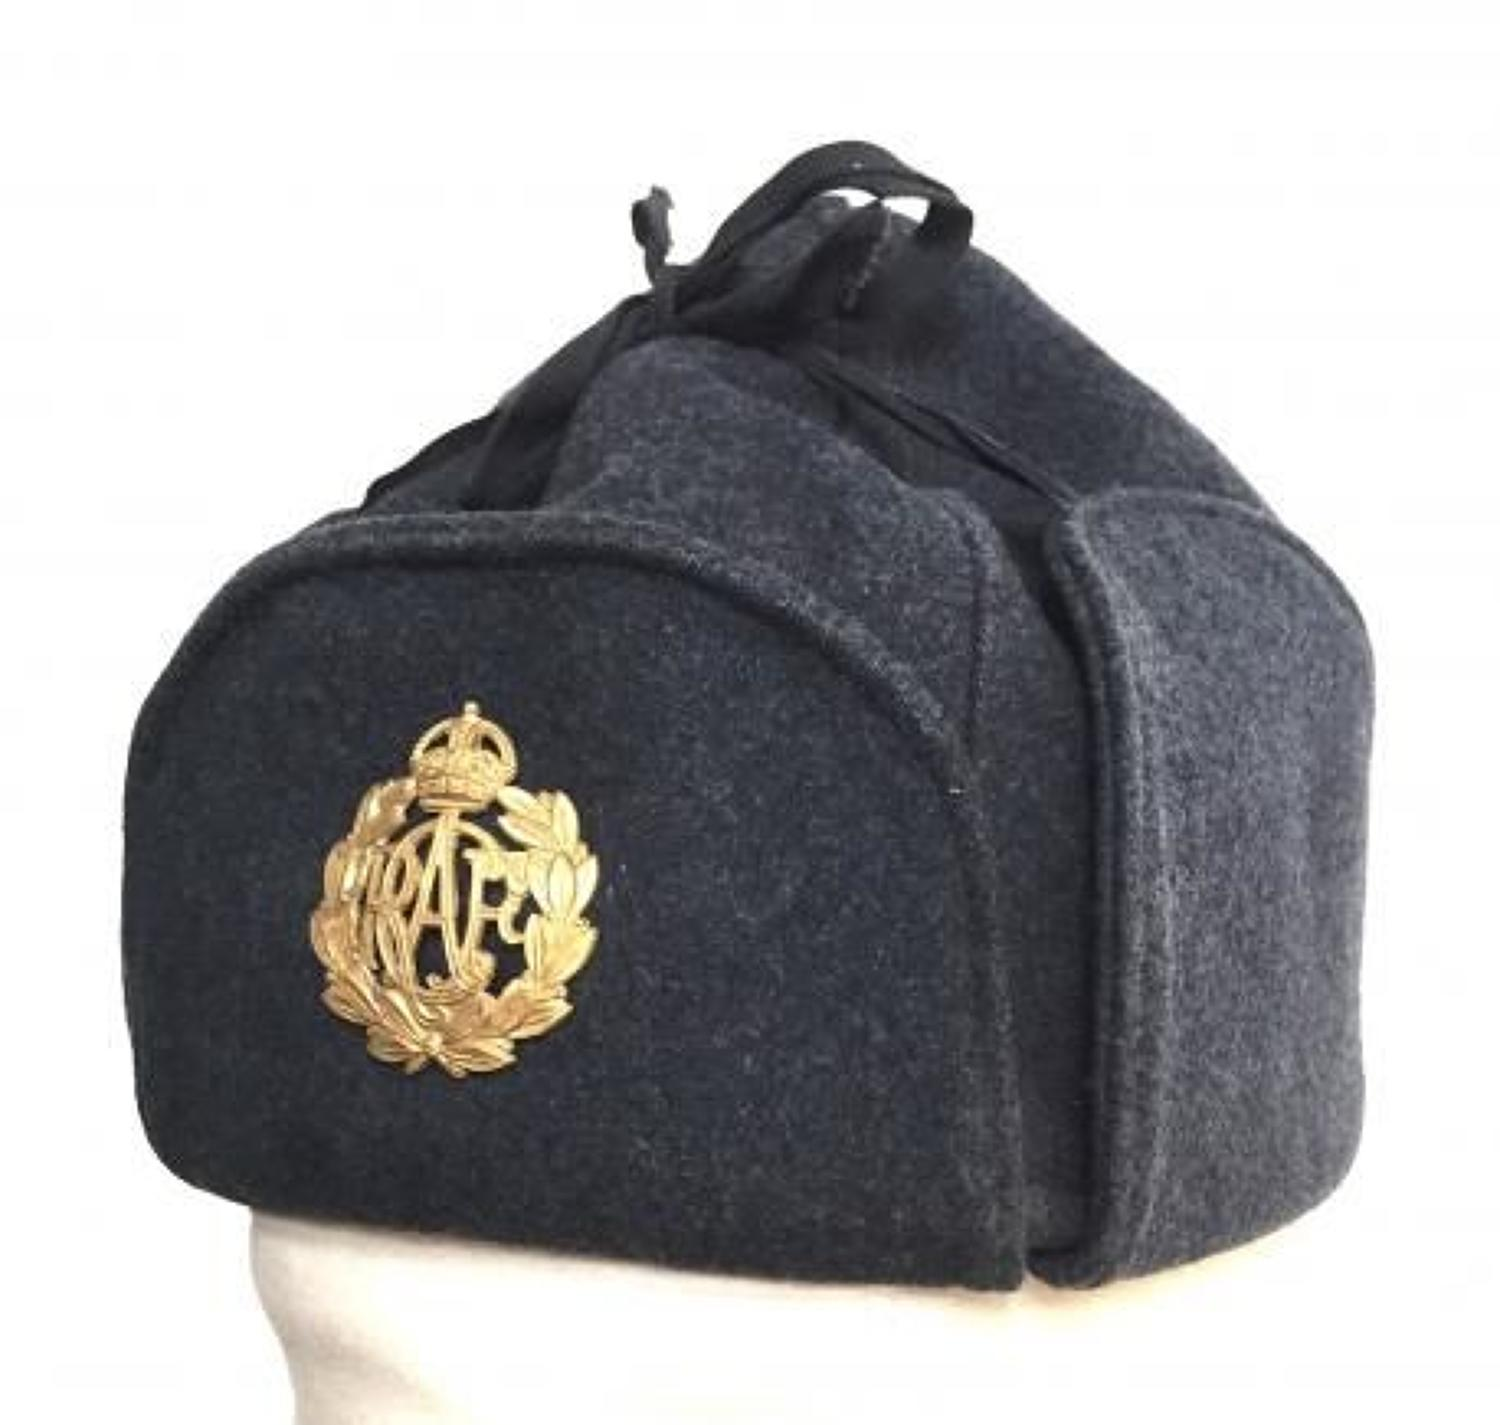 WW2 Period RCAF Royal Canadian Air Force Cold Weather Hat.